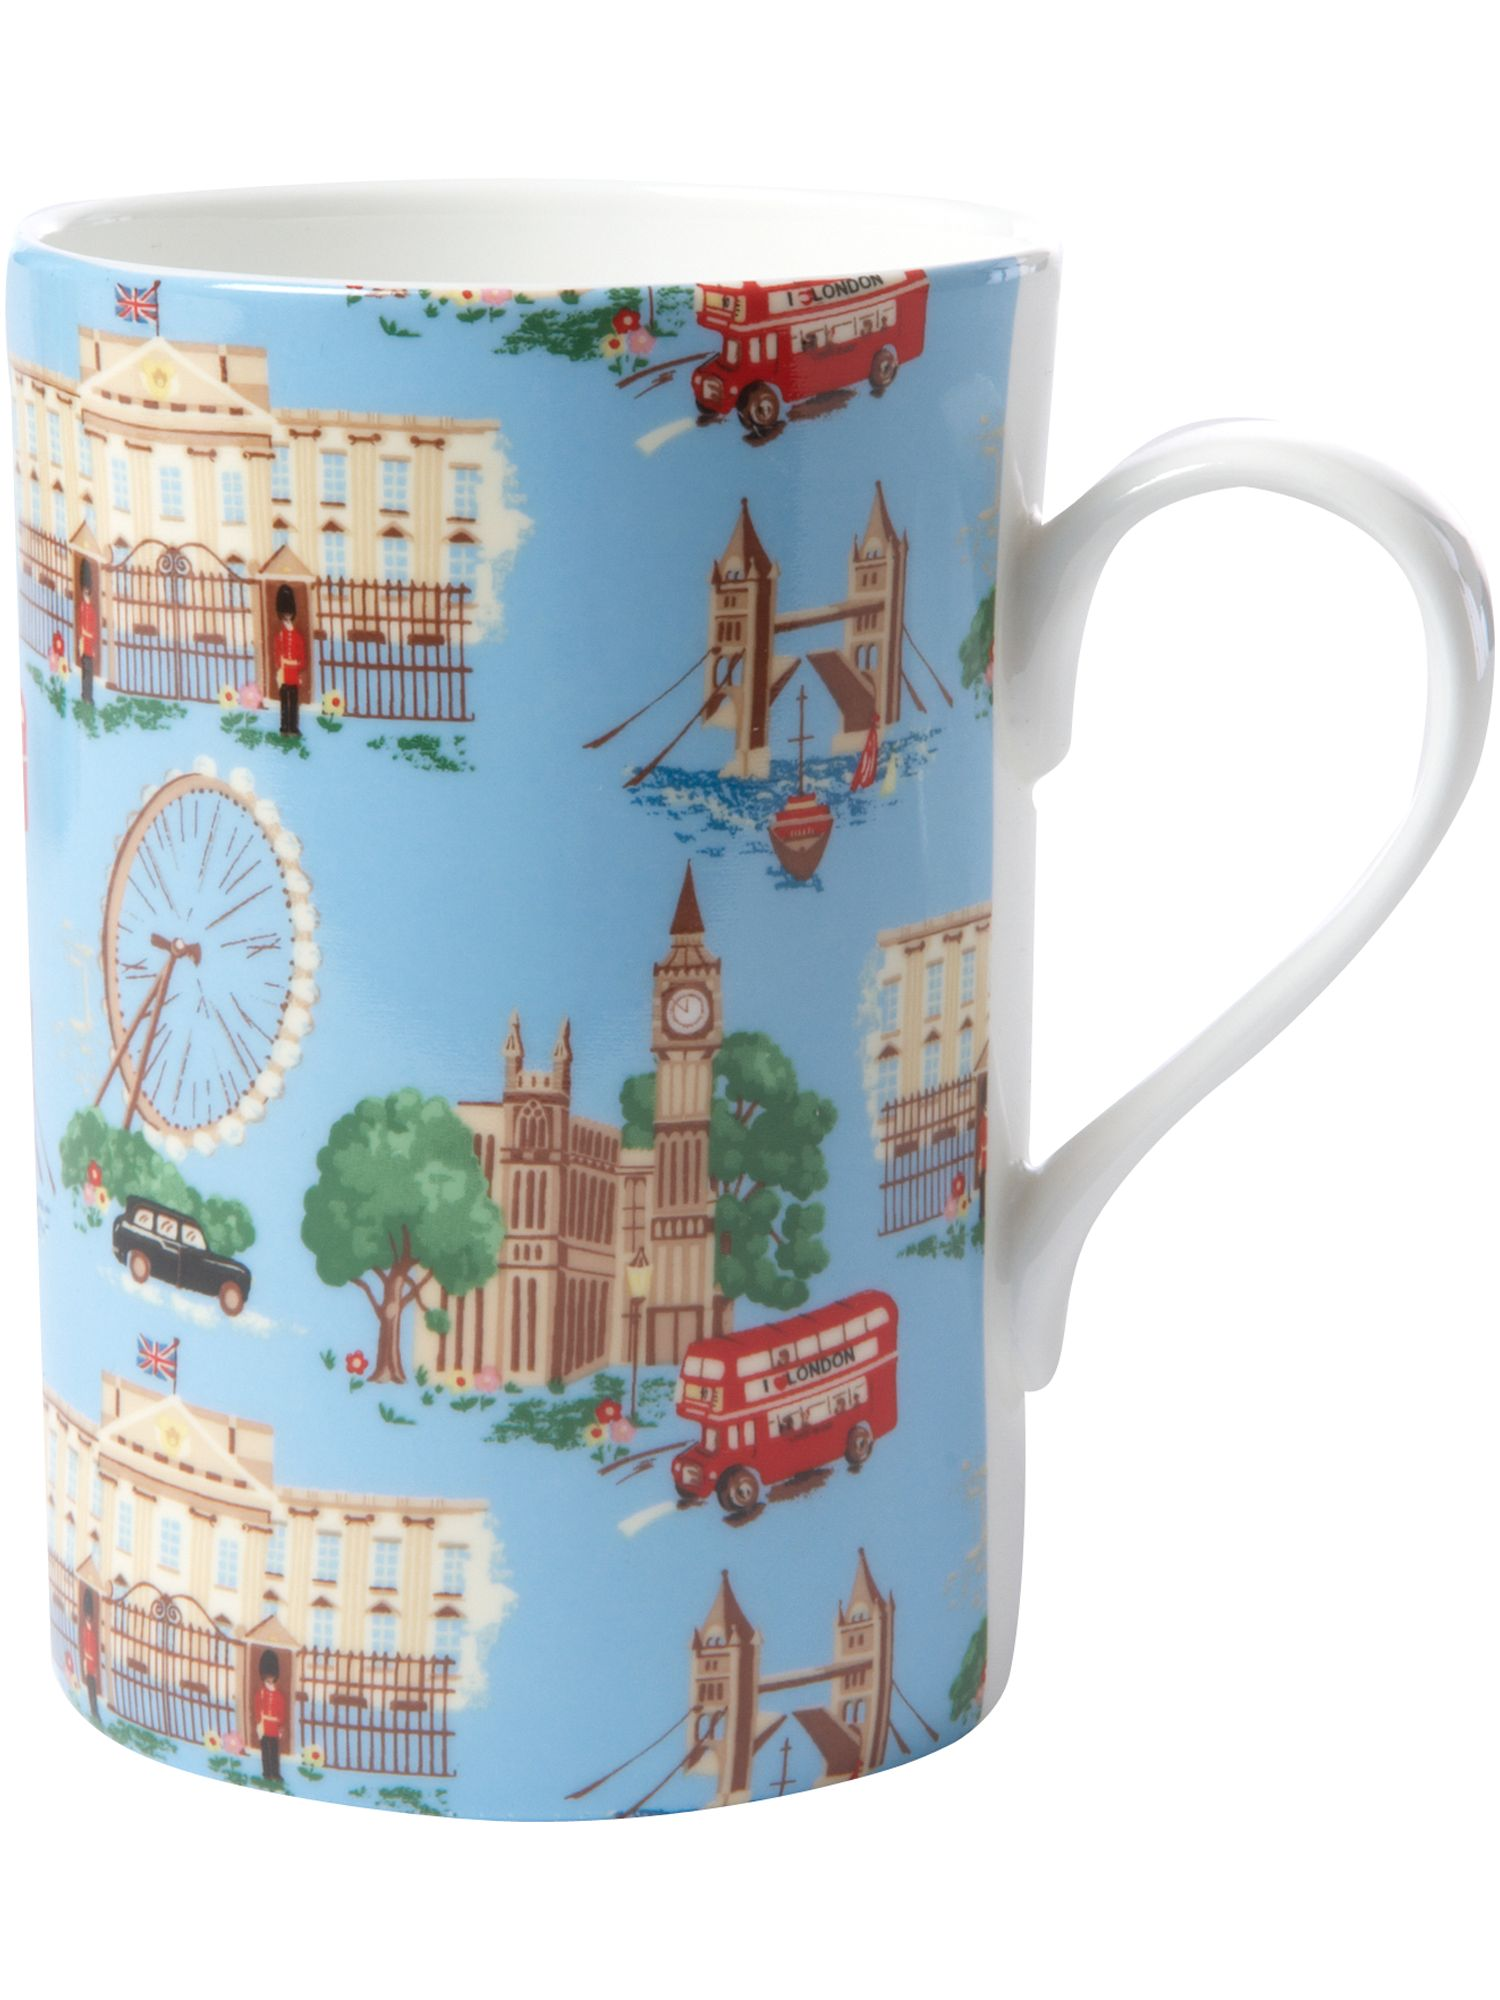 London chintz mug